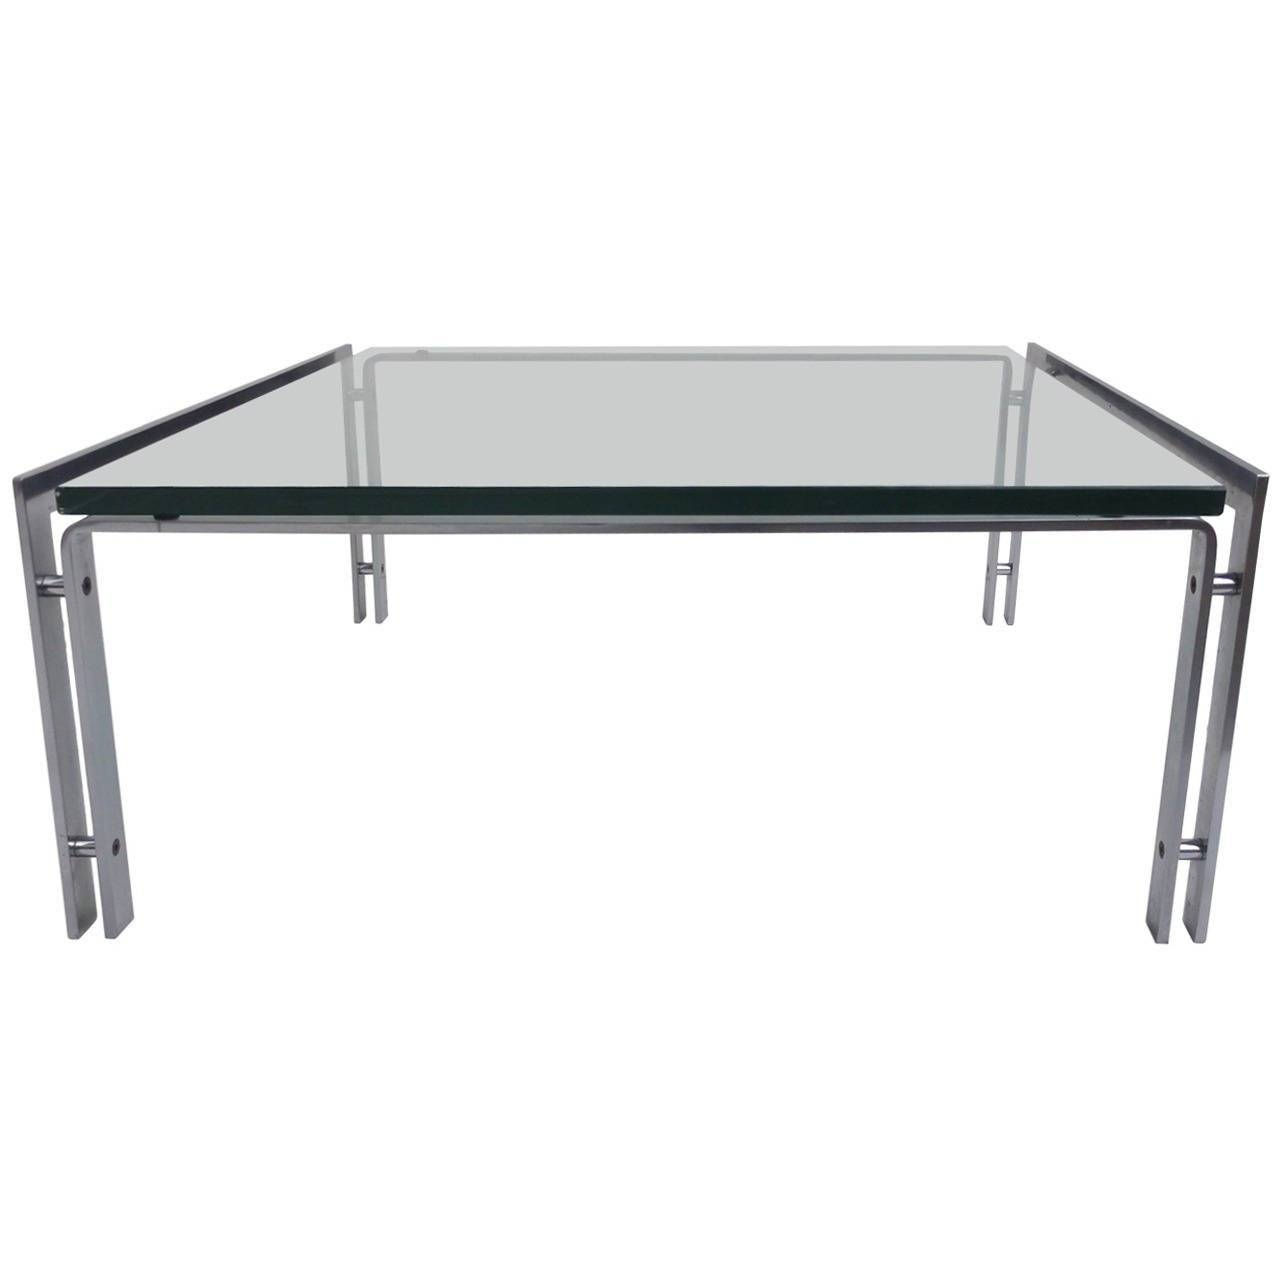 Dutch Metaform Steel And Glass Coffee Table In The Style Of Poul within Steel and Glass Coffee Tables (Image 12 of 30)